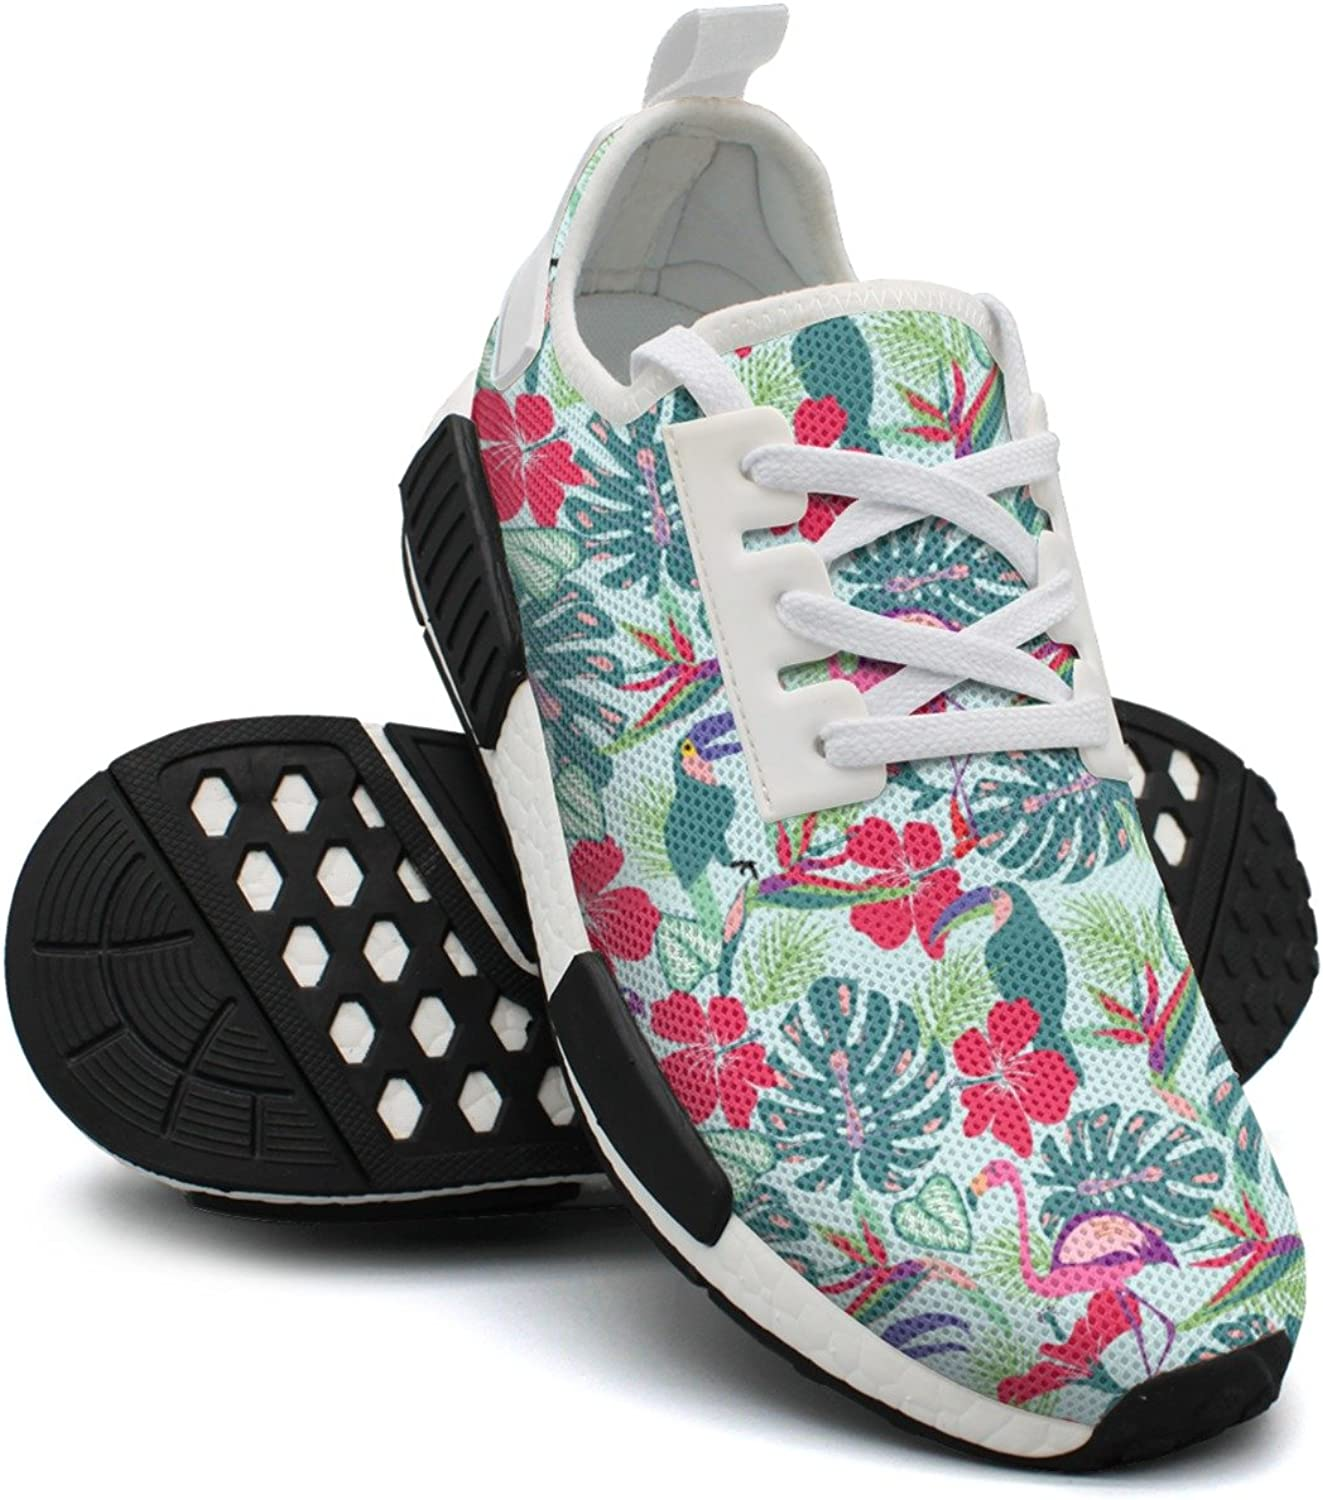 Ktyyuwwww Women's colorful Cool Tropical Plants and Flowers with Toucan Parred Unique Running shoes